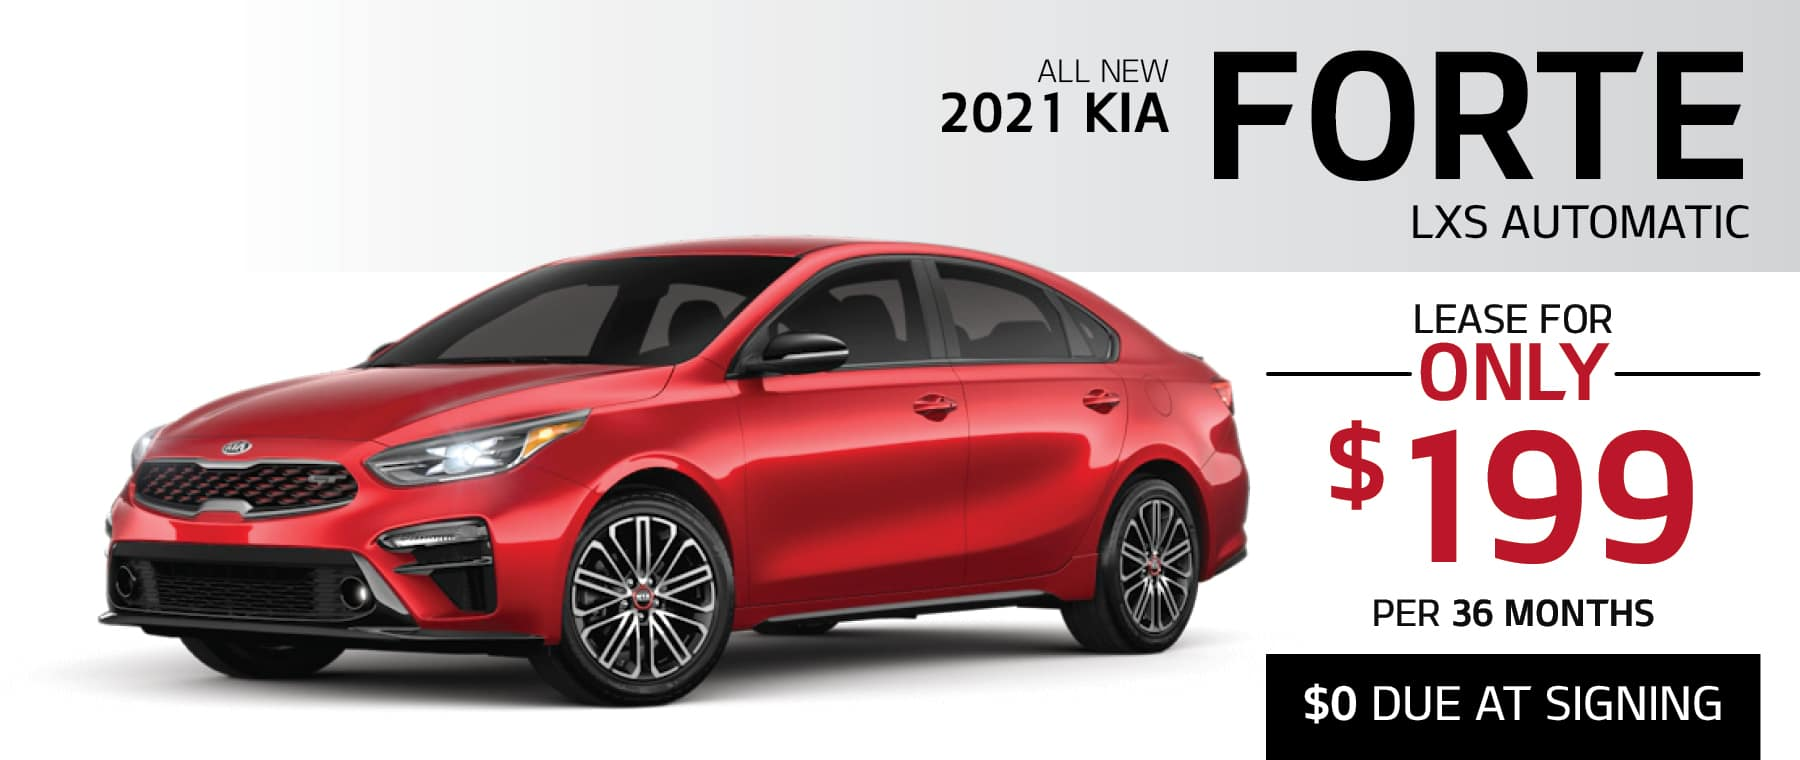 2021 Kia Forte LXS lease for $199 per month for 36 months with $0 due at signing